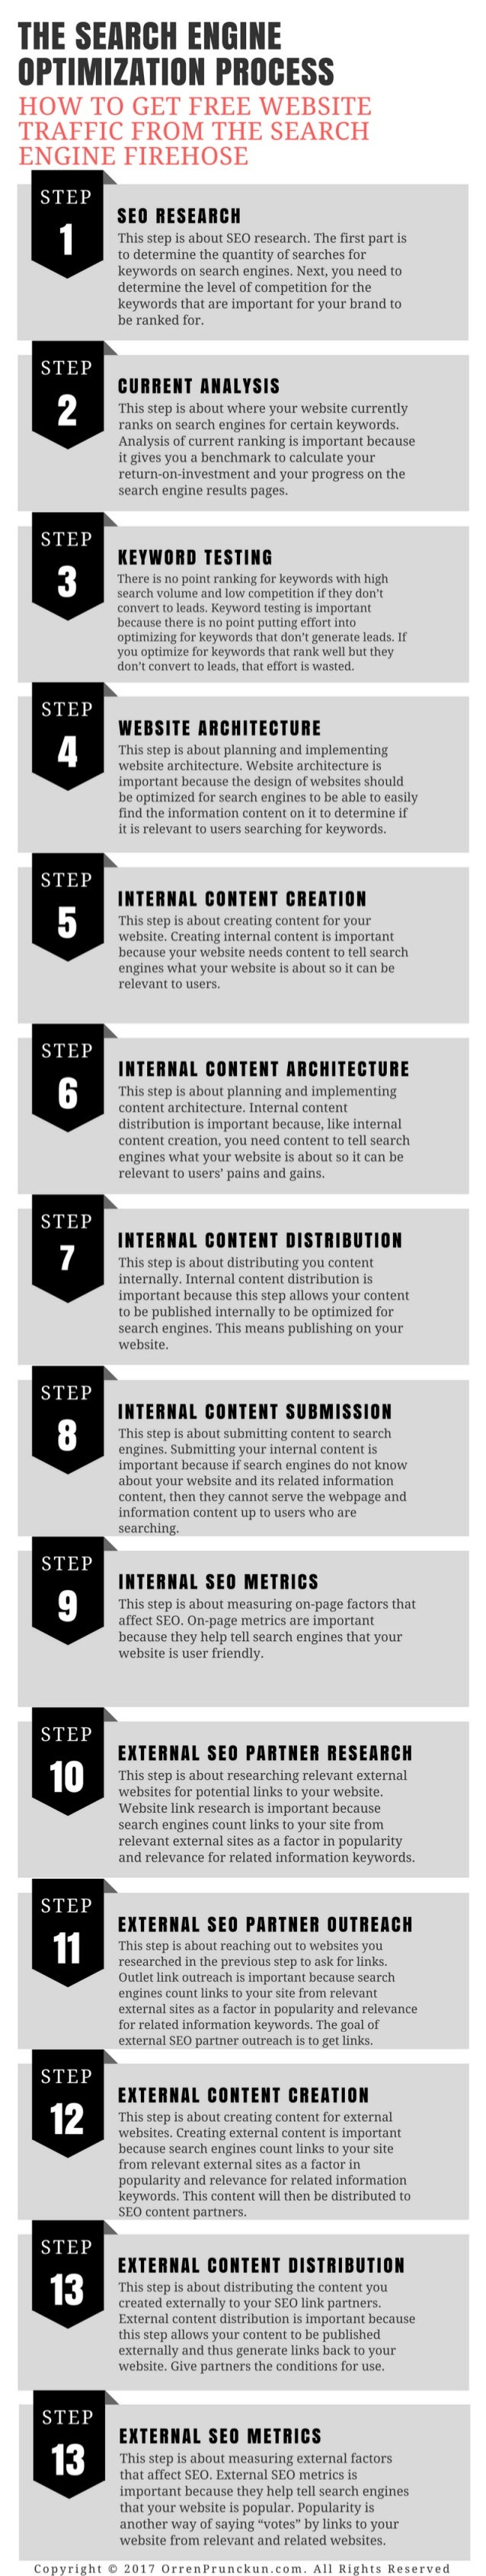 The Search Engine Optimization Process Infographic